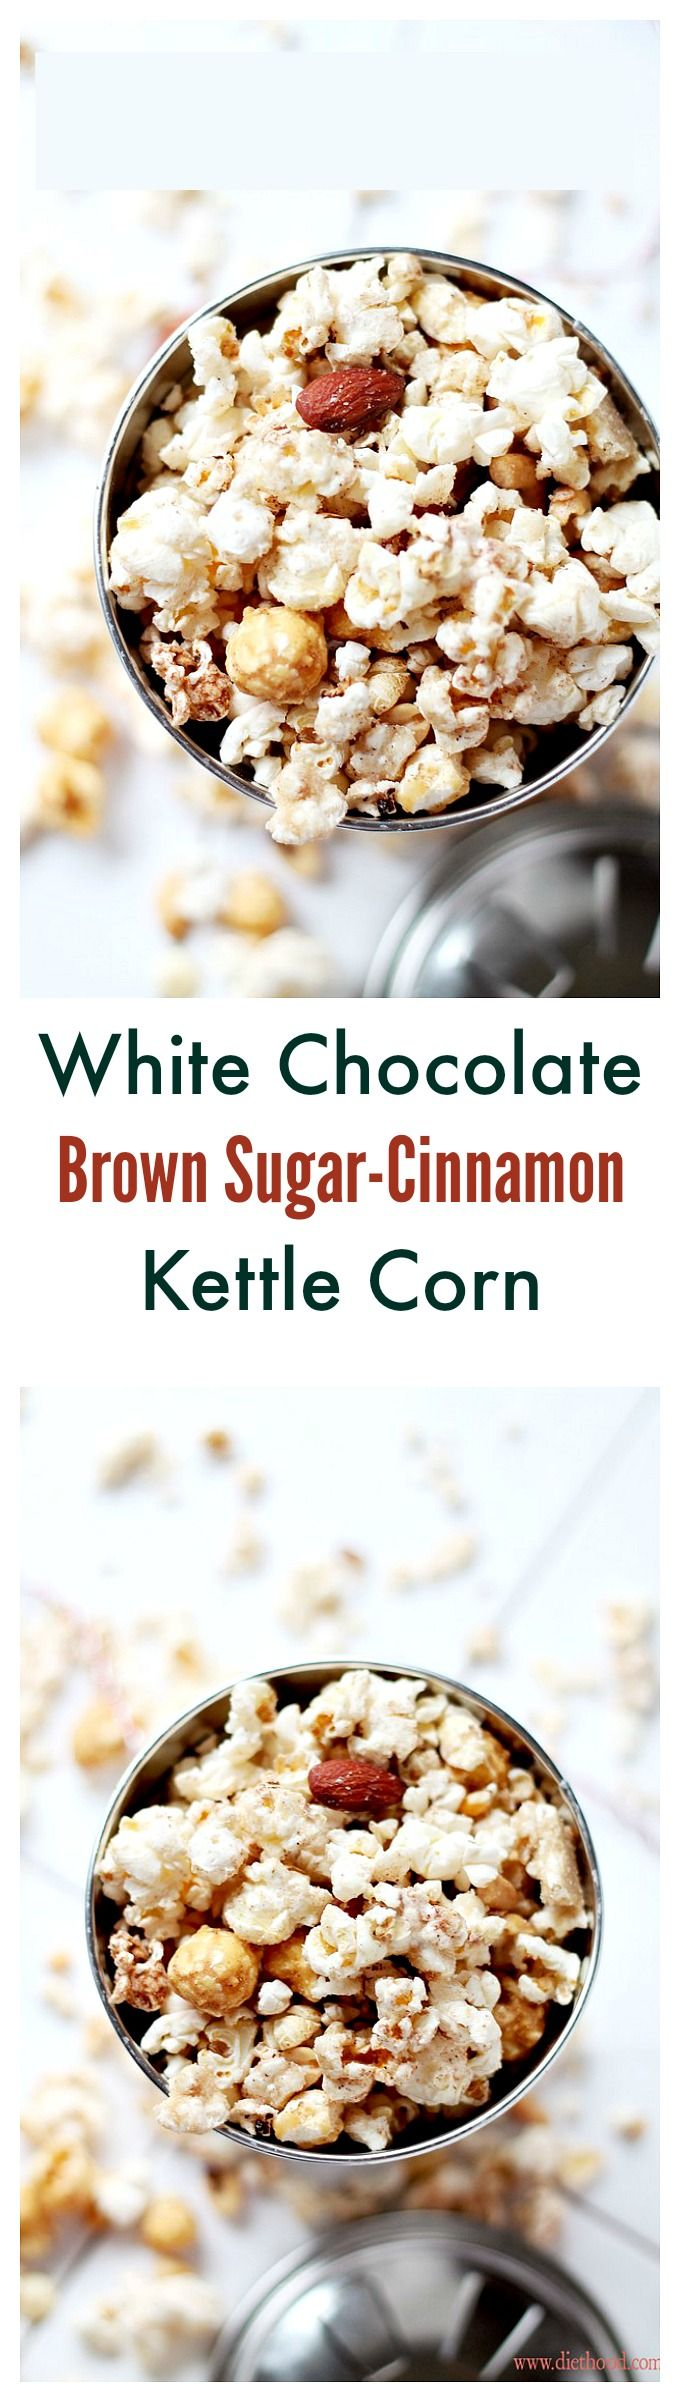 Delicious and festive Kettle Corn covered with melted white chocolate, brown sugar and cinnamon.